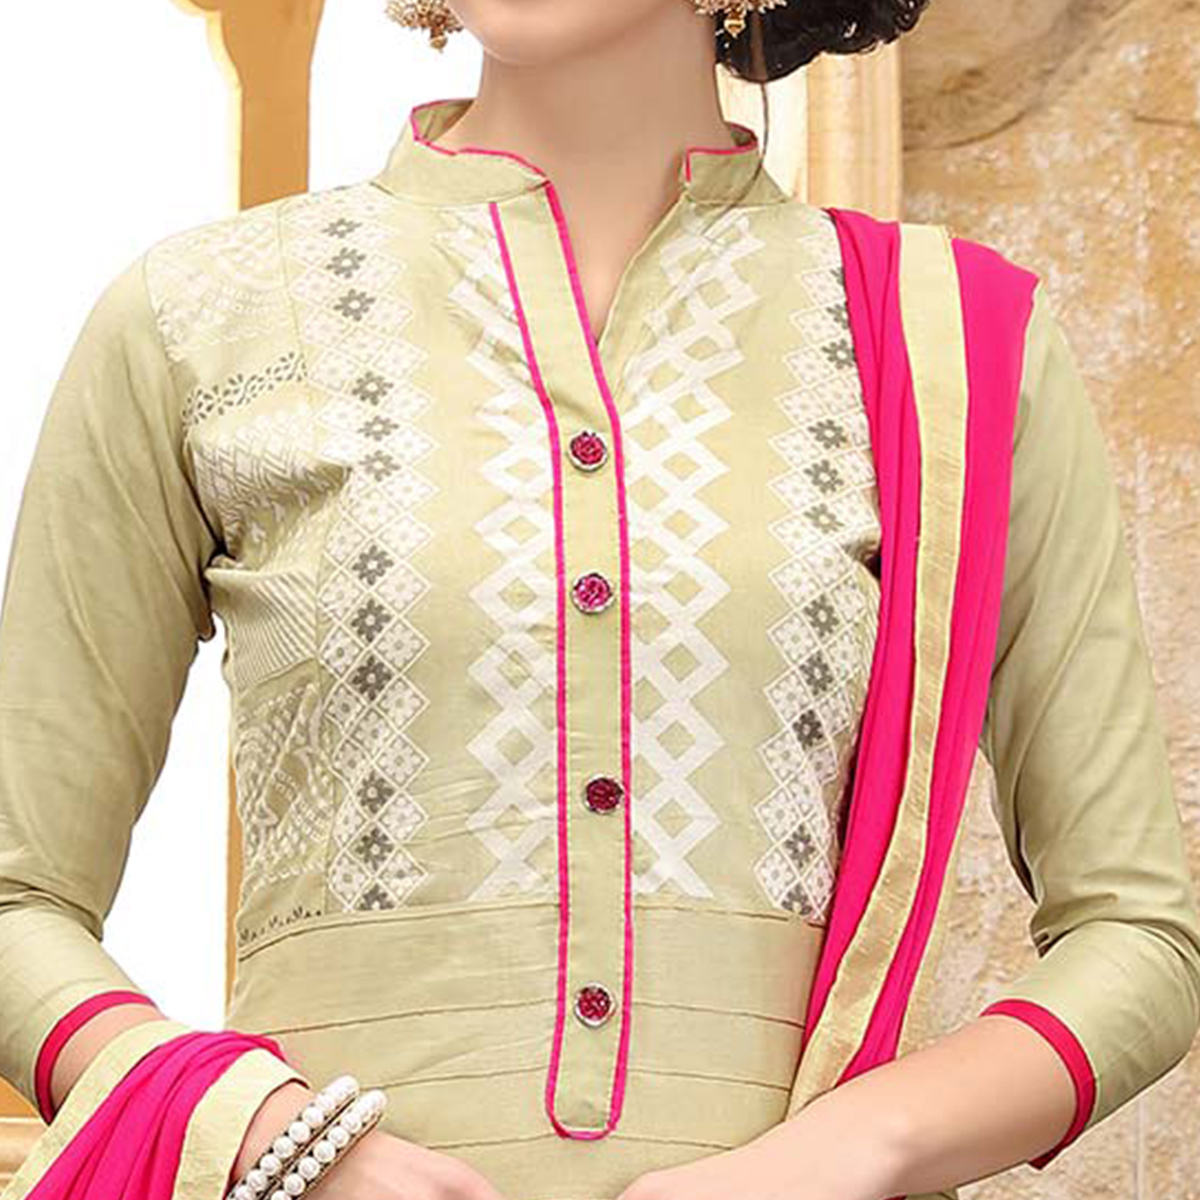 Classy Cream Colored Thread Embroidered Cotton Dress Material